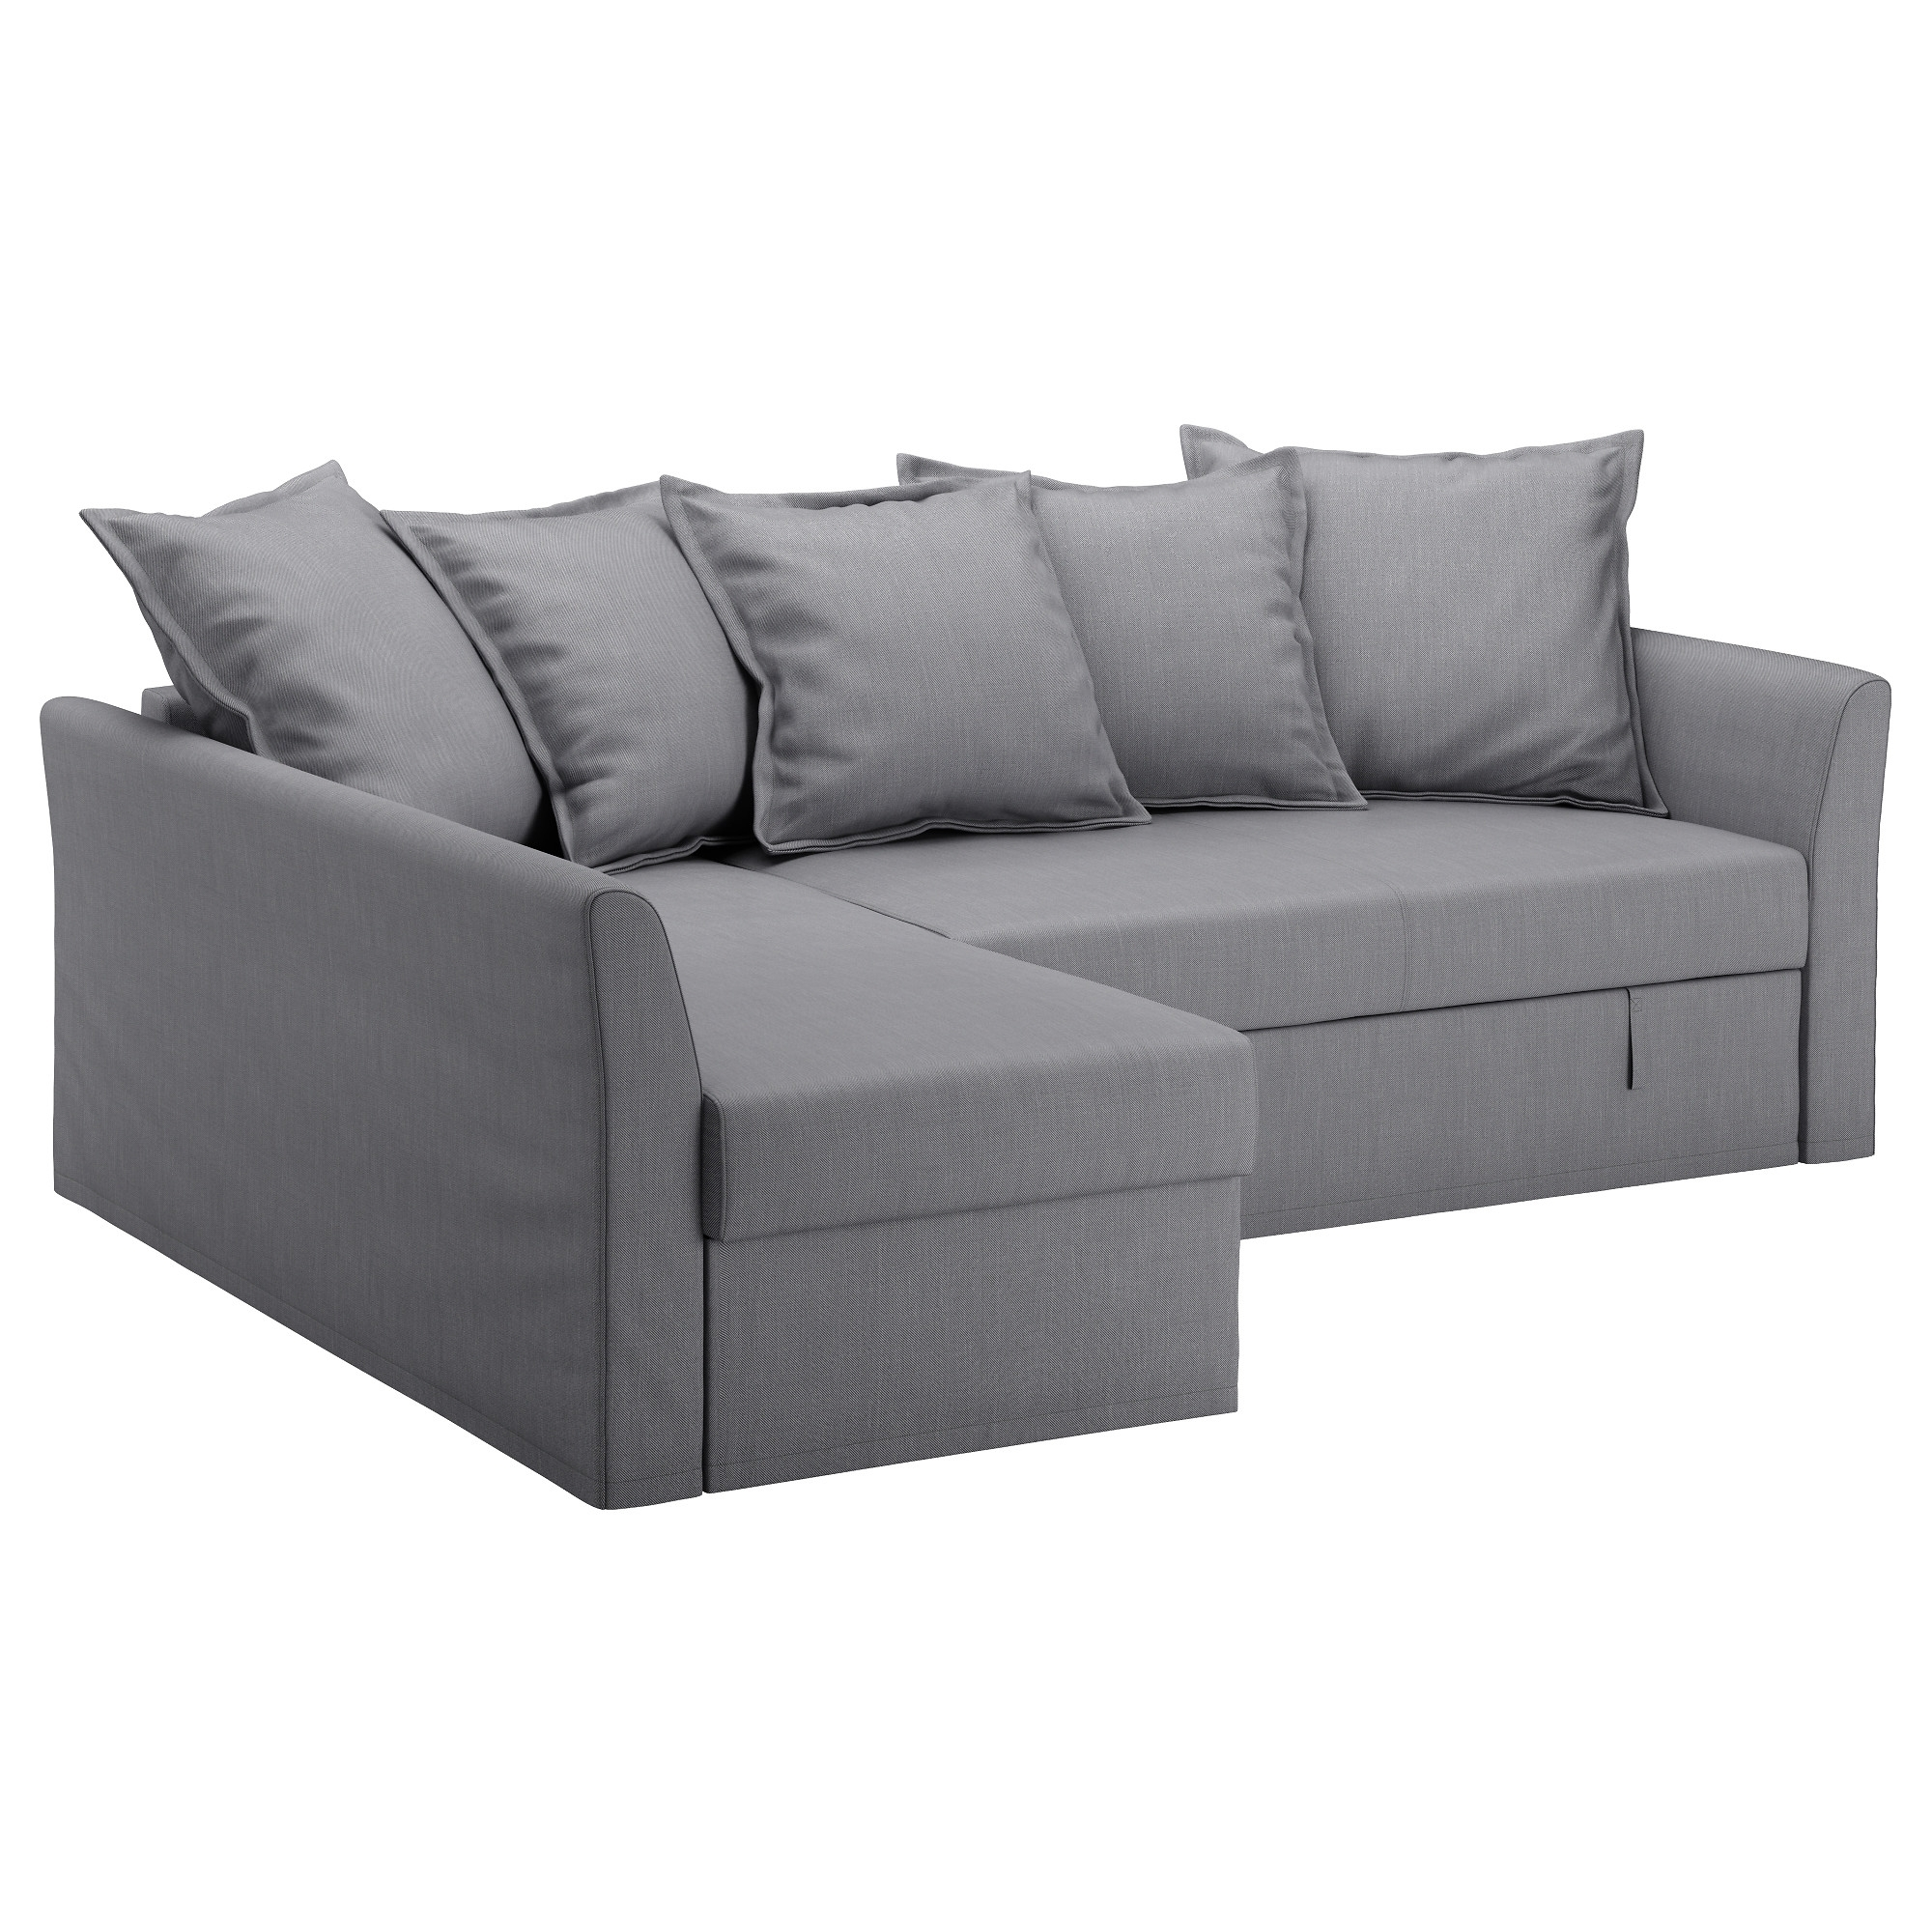 Chaise Lounges With Regard To Well Liked Chaise Lounge Sofa Beds (View 7 of 15)